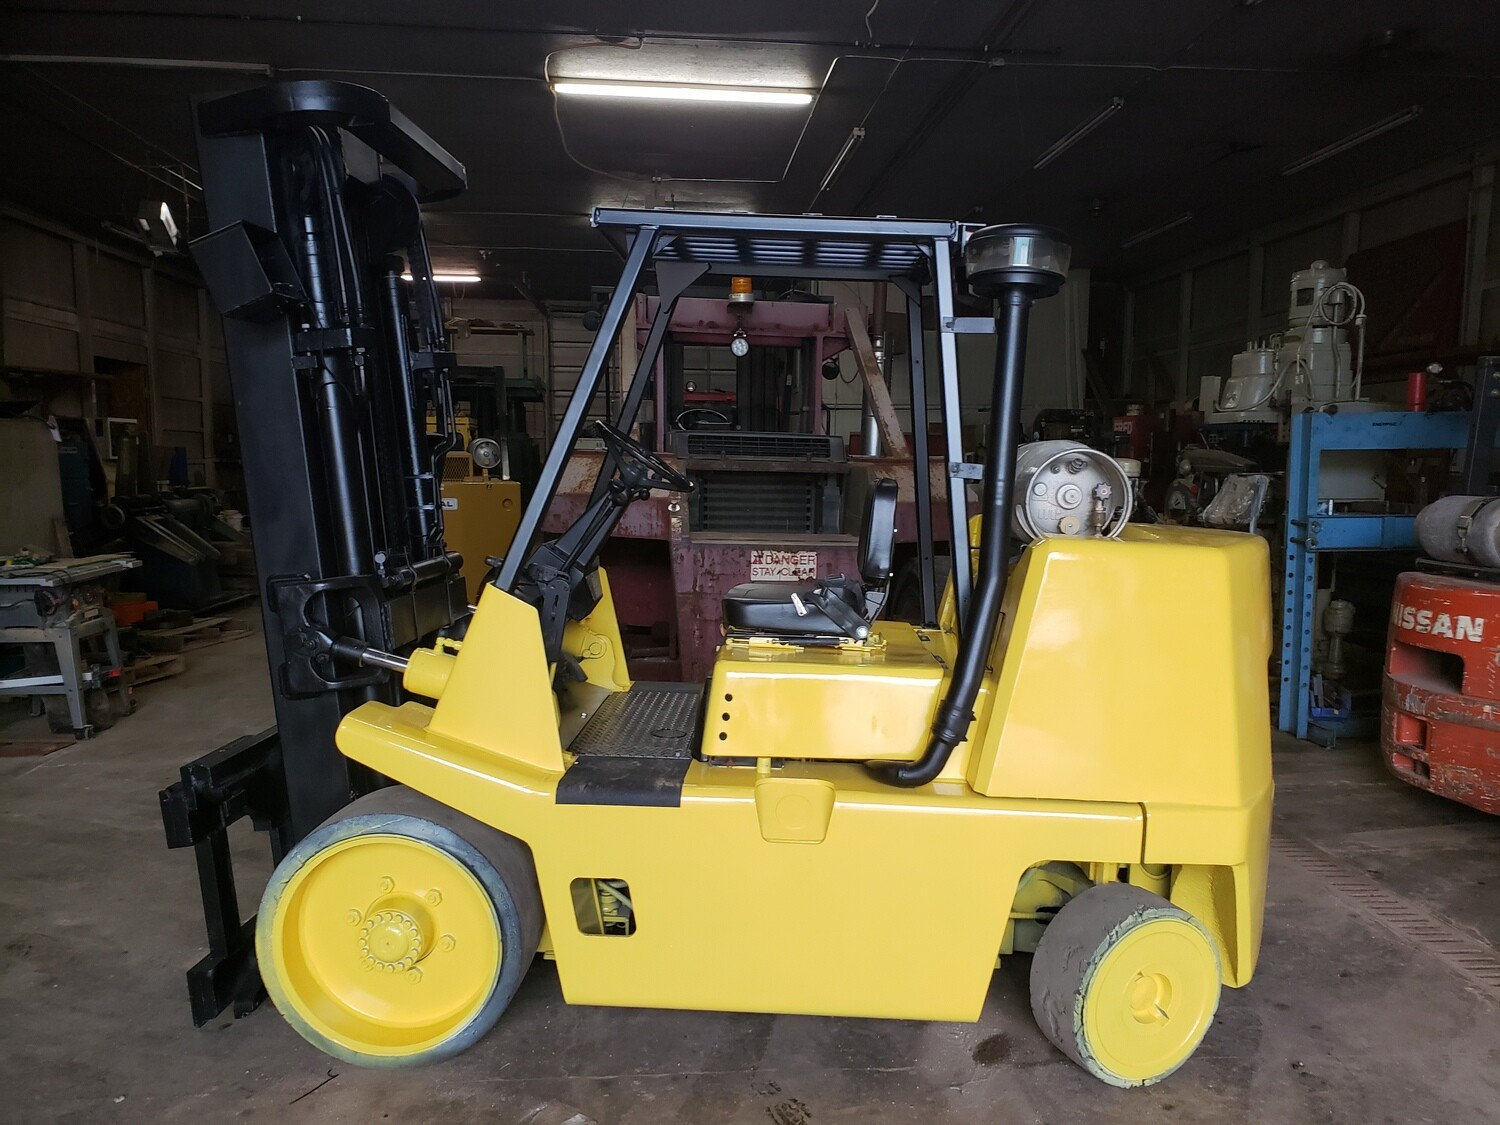 15,500 lb Capacity Yale-Hyster Forklift For Sale 7.75 Ton